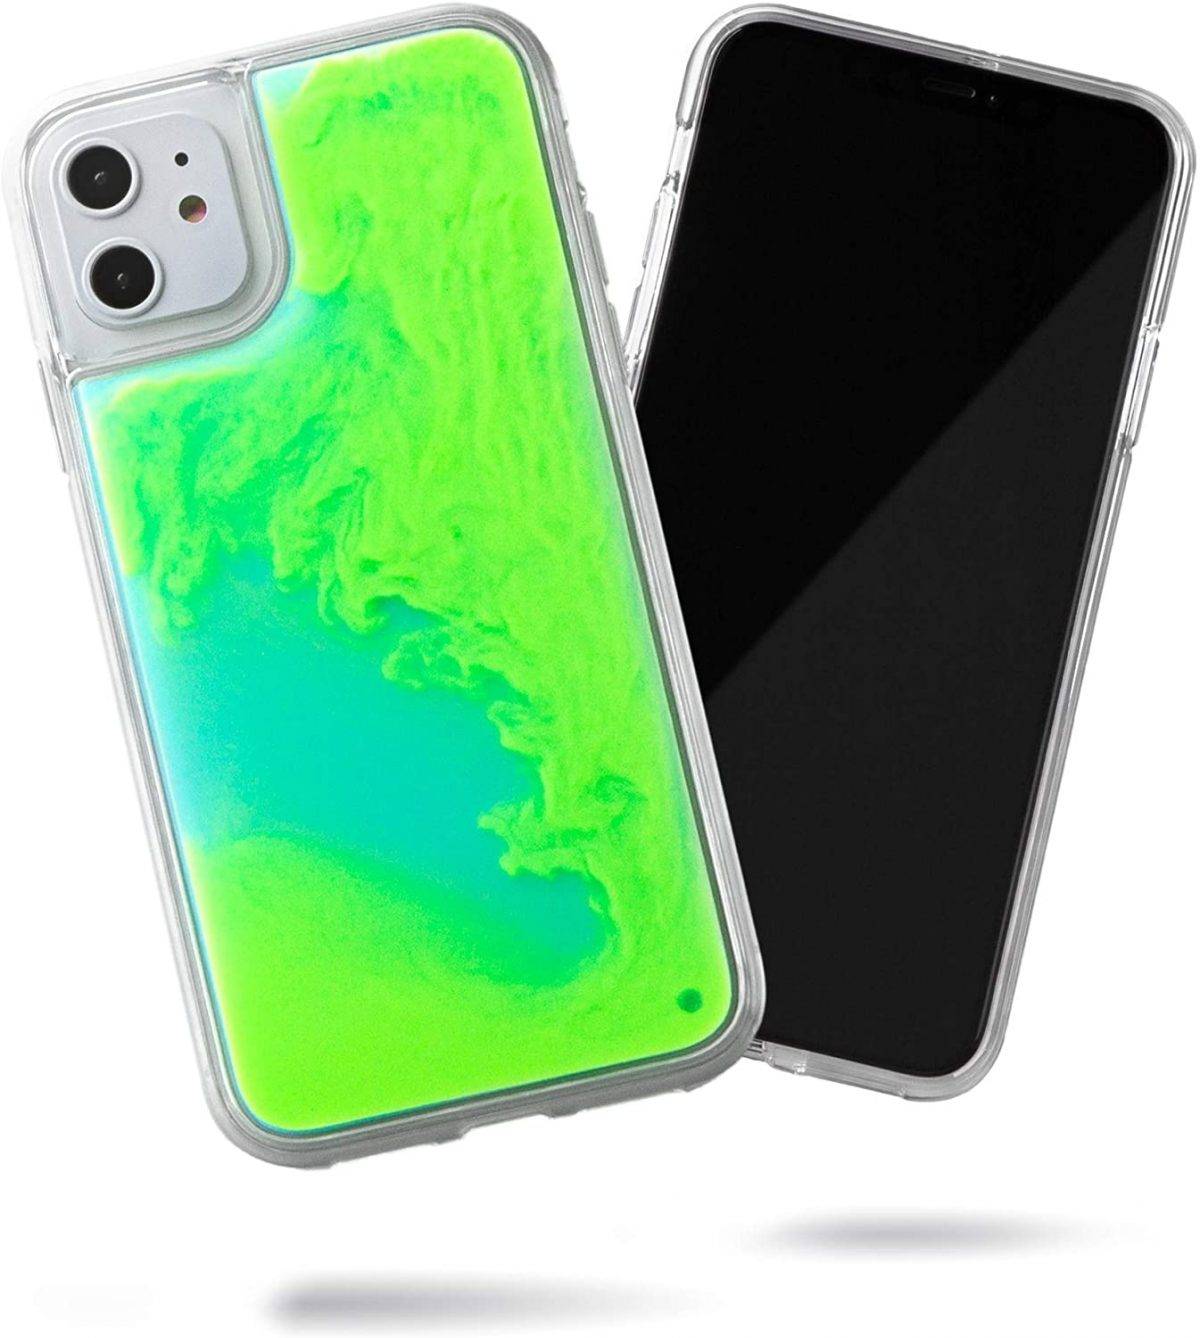 Trenx Exclusive Neon Sand Case for iPhone 12 (Lime Sorbet)